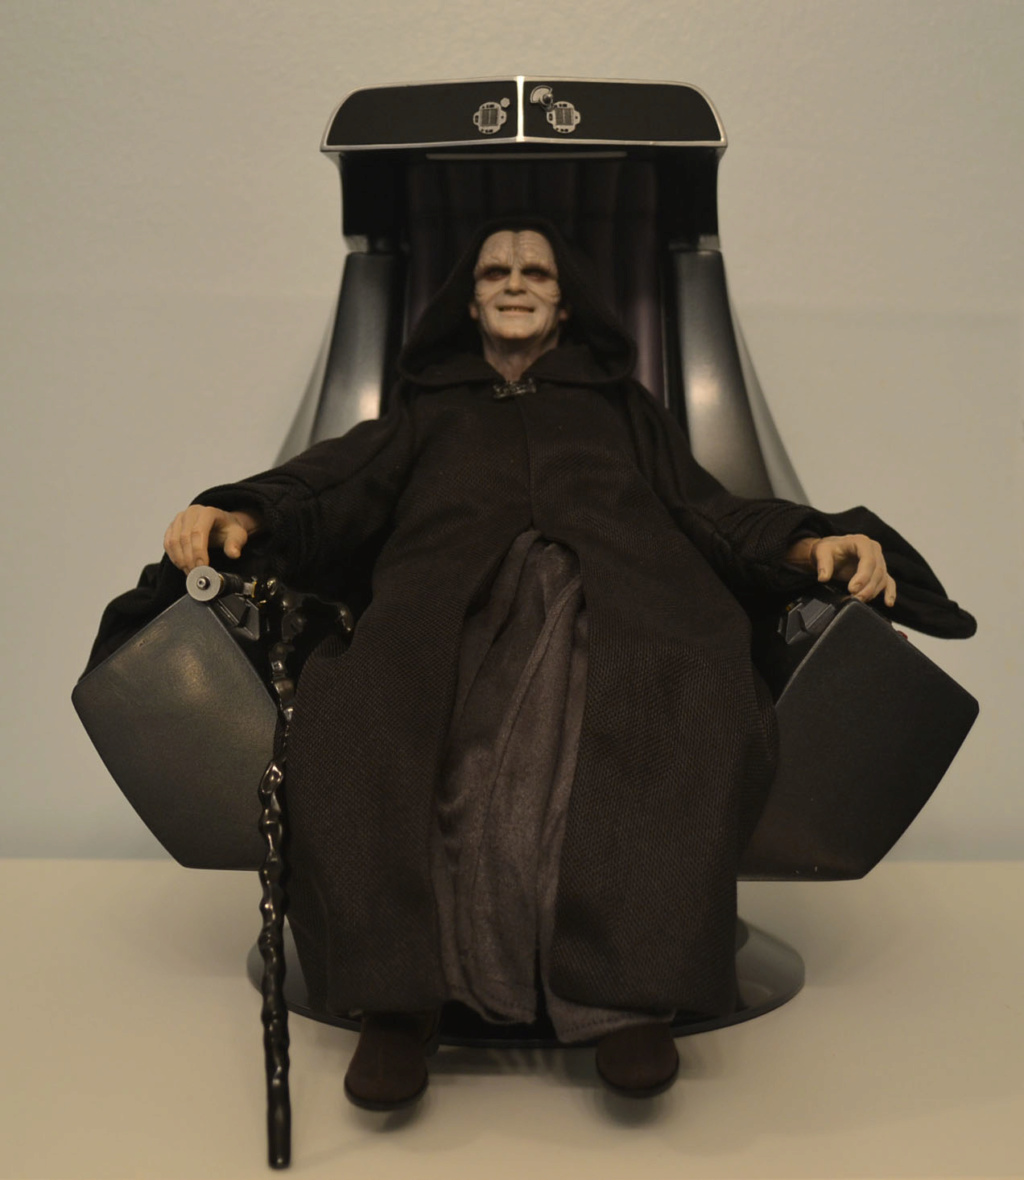 scifi - Hot Toys Star Wars Emperor Palpatine (Deluxe) Review _dsc2913